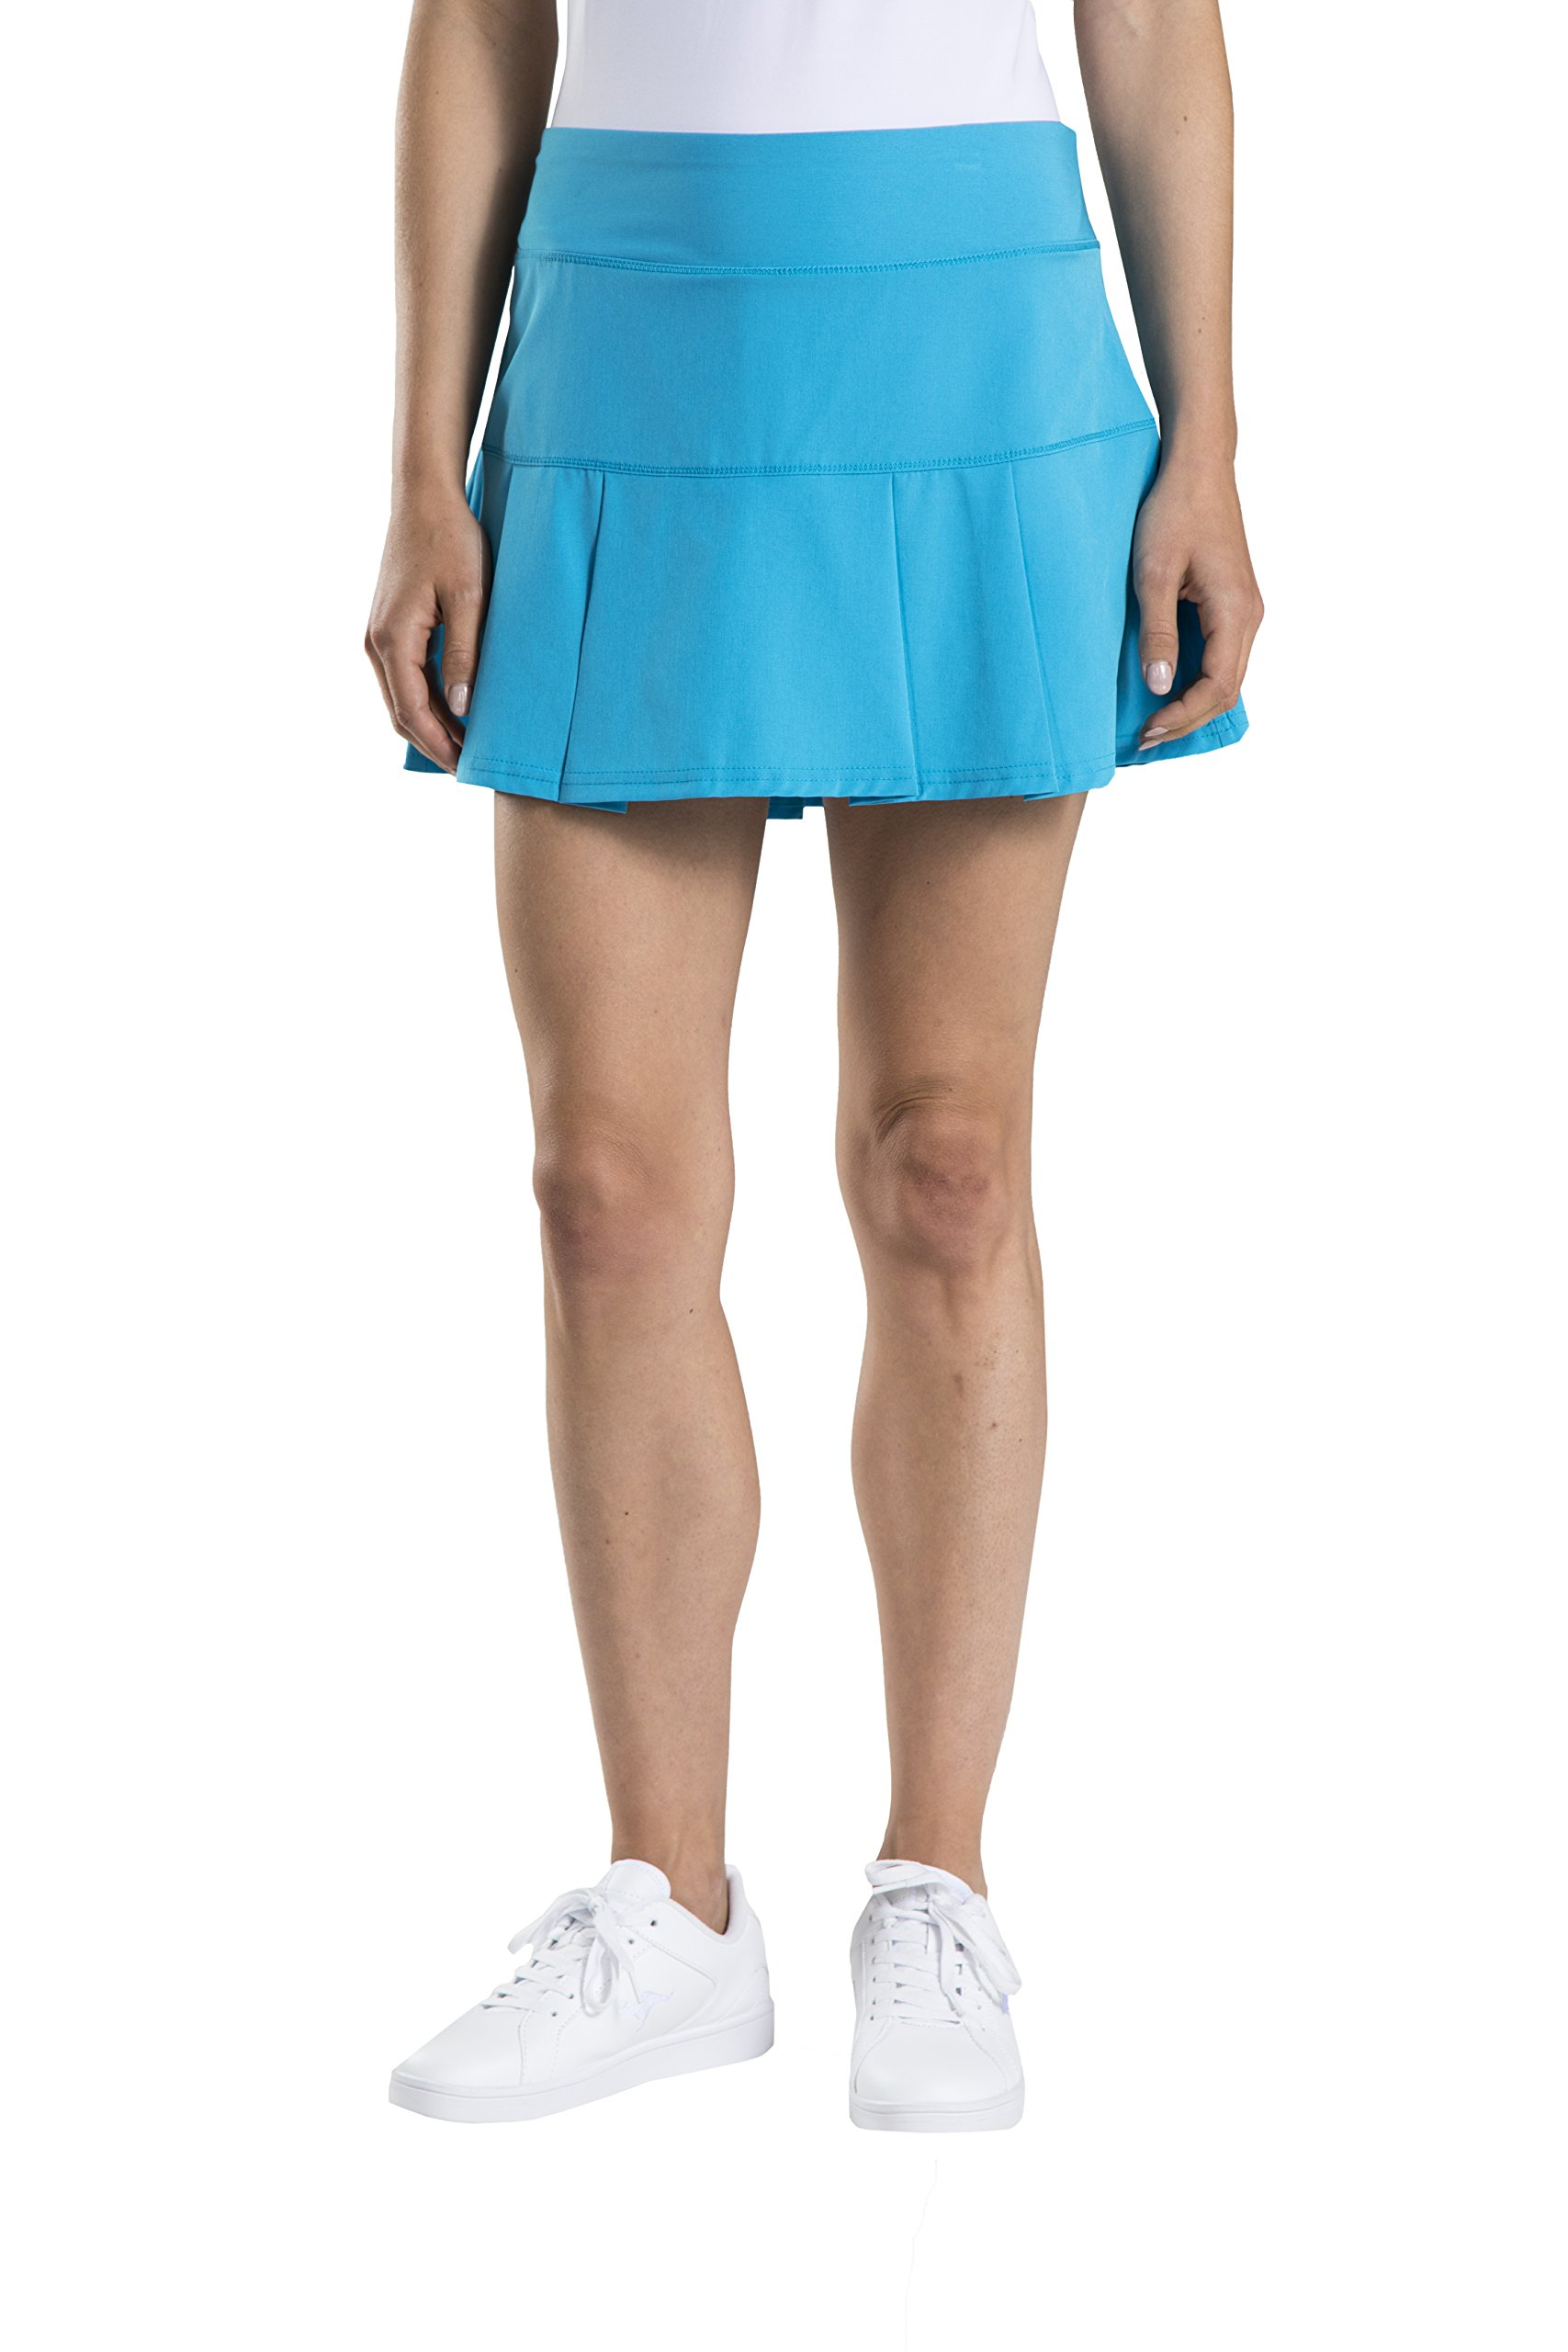 Prince Women's Stretch Woven Athletic Skort, Atomic Blue, S